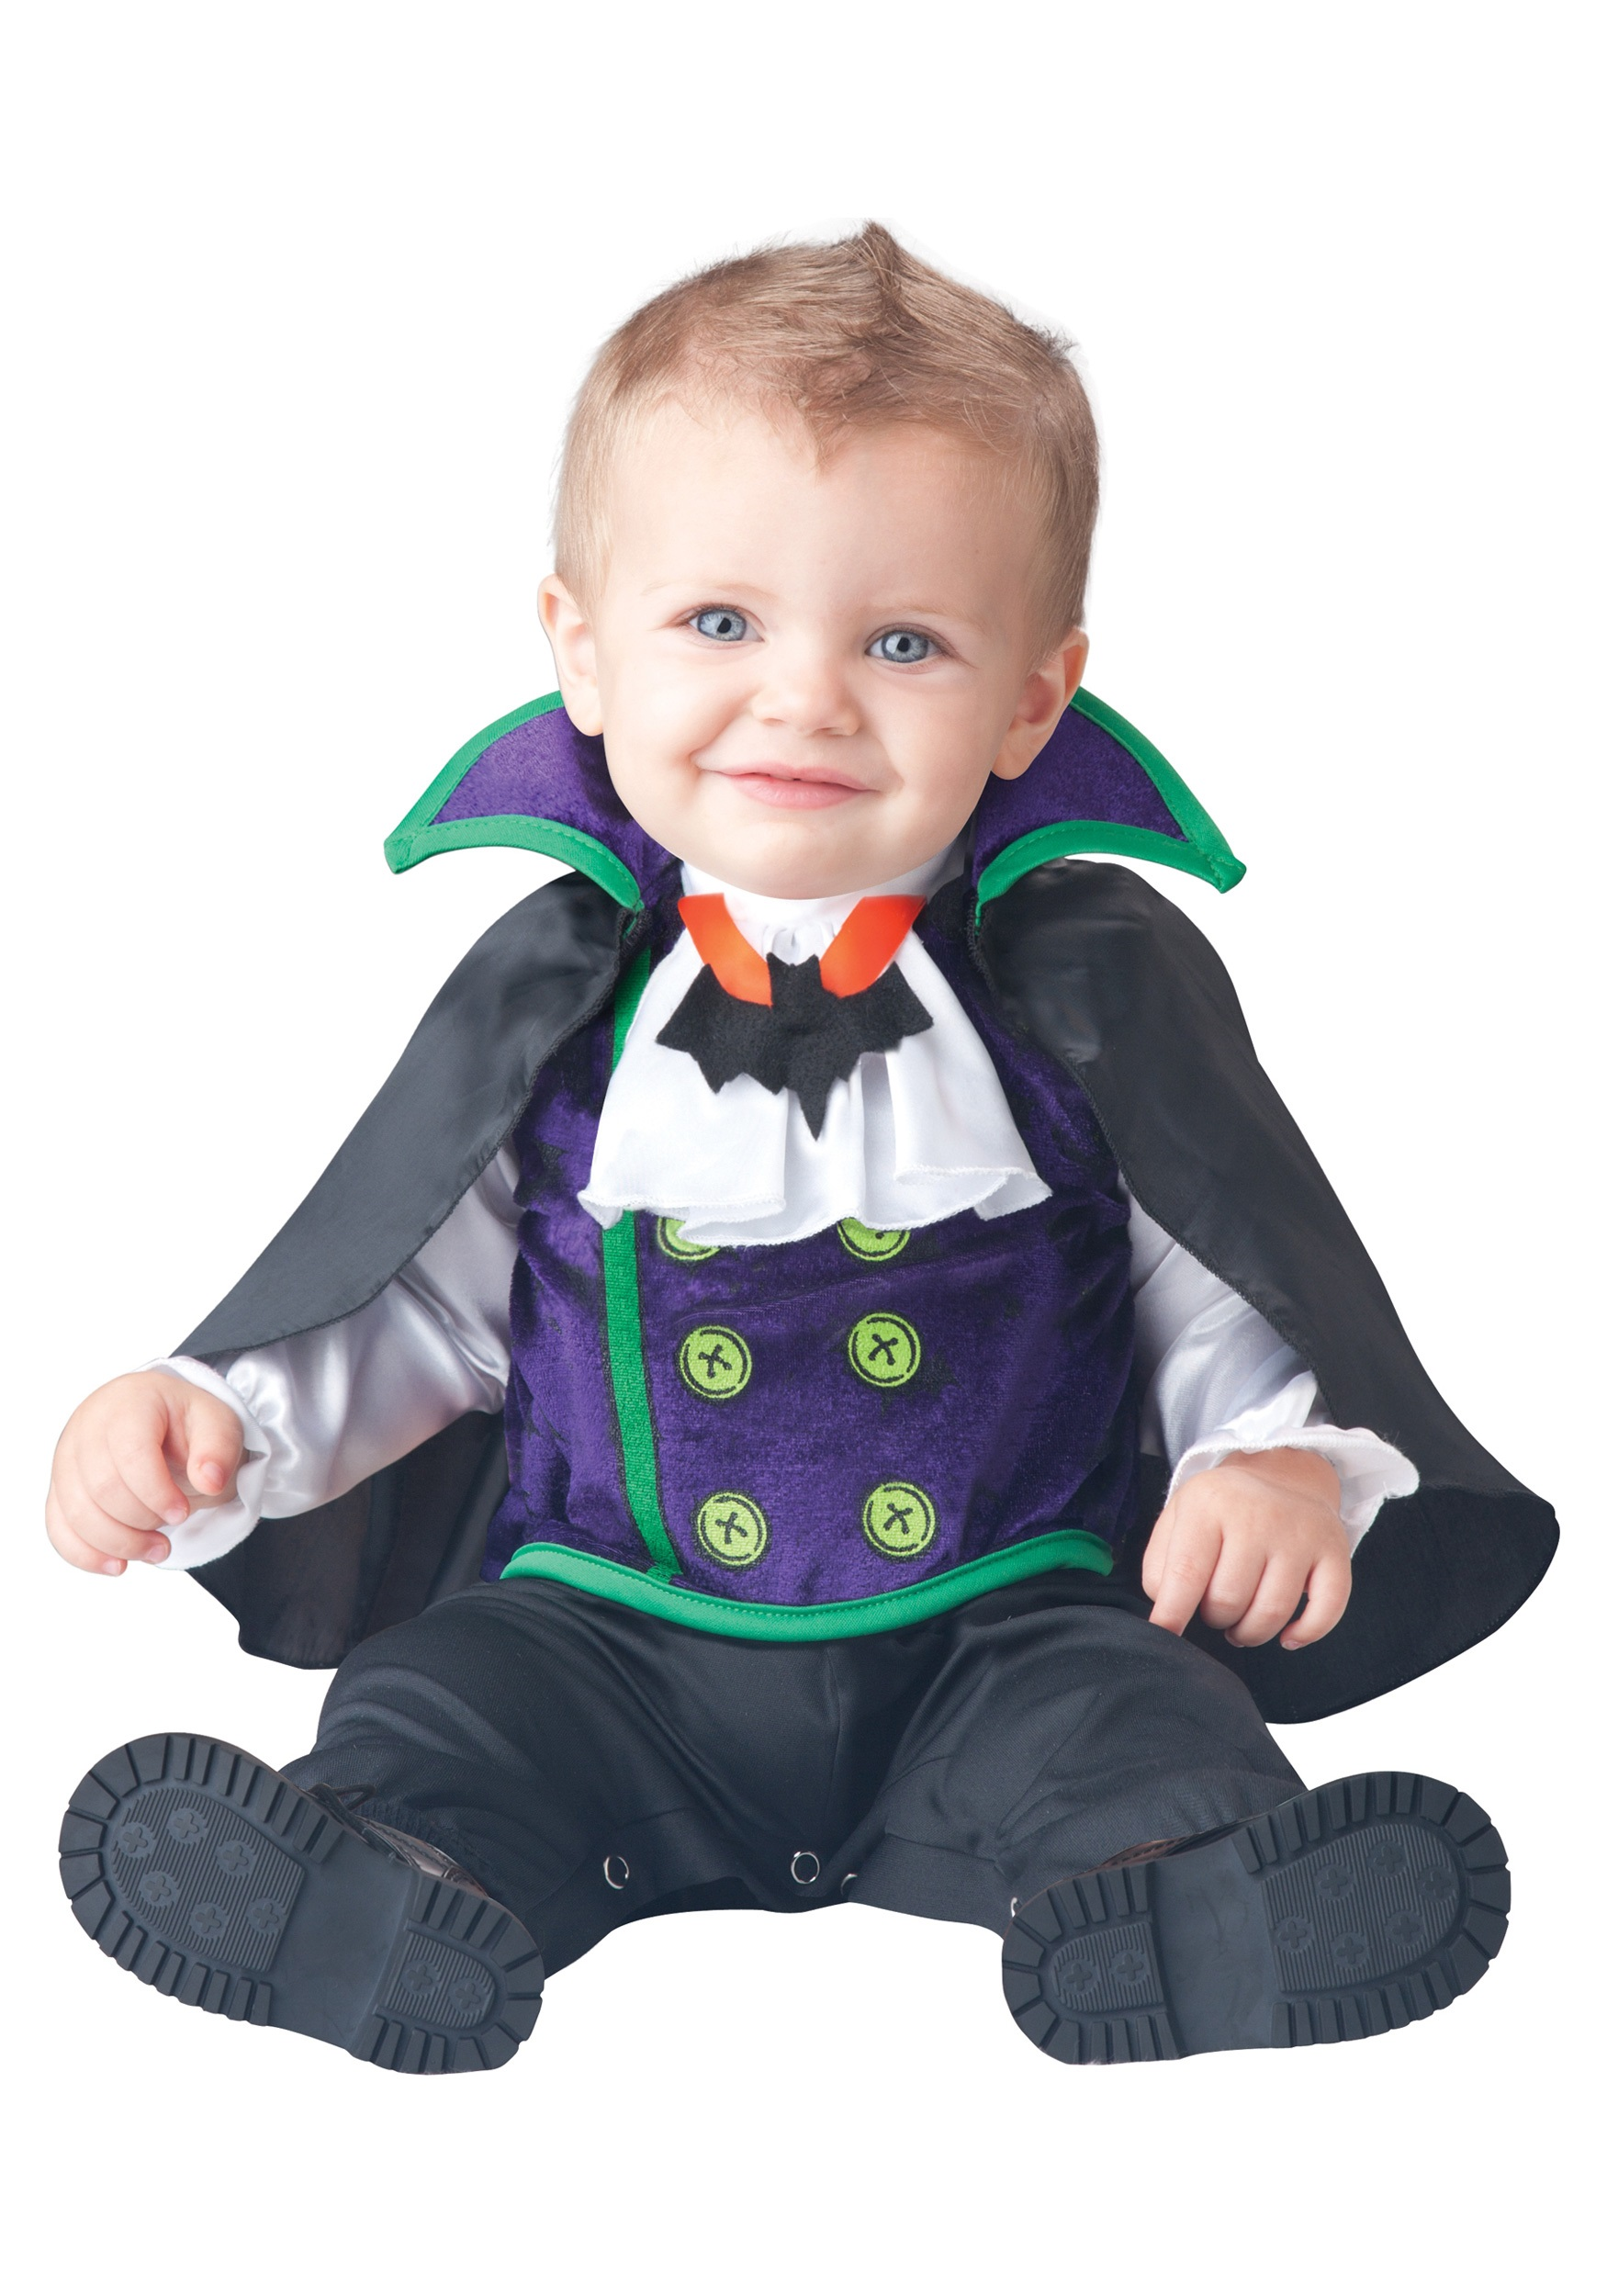 Count Cutie Costume  sc 1 st  Halloween Costumes & Count Cutie Costume - Halloween Costumes